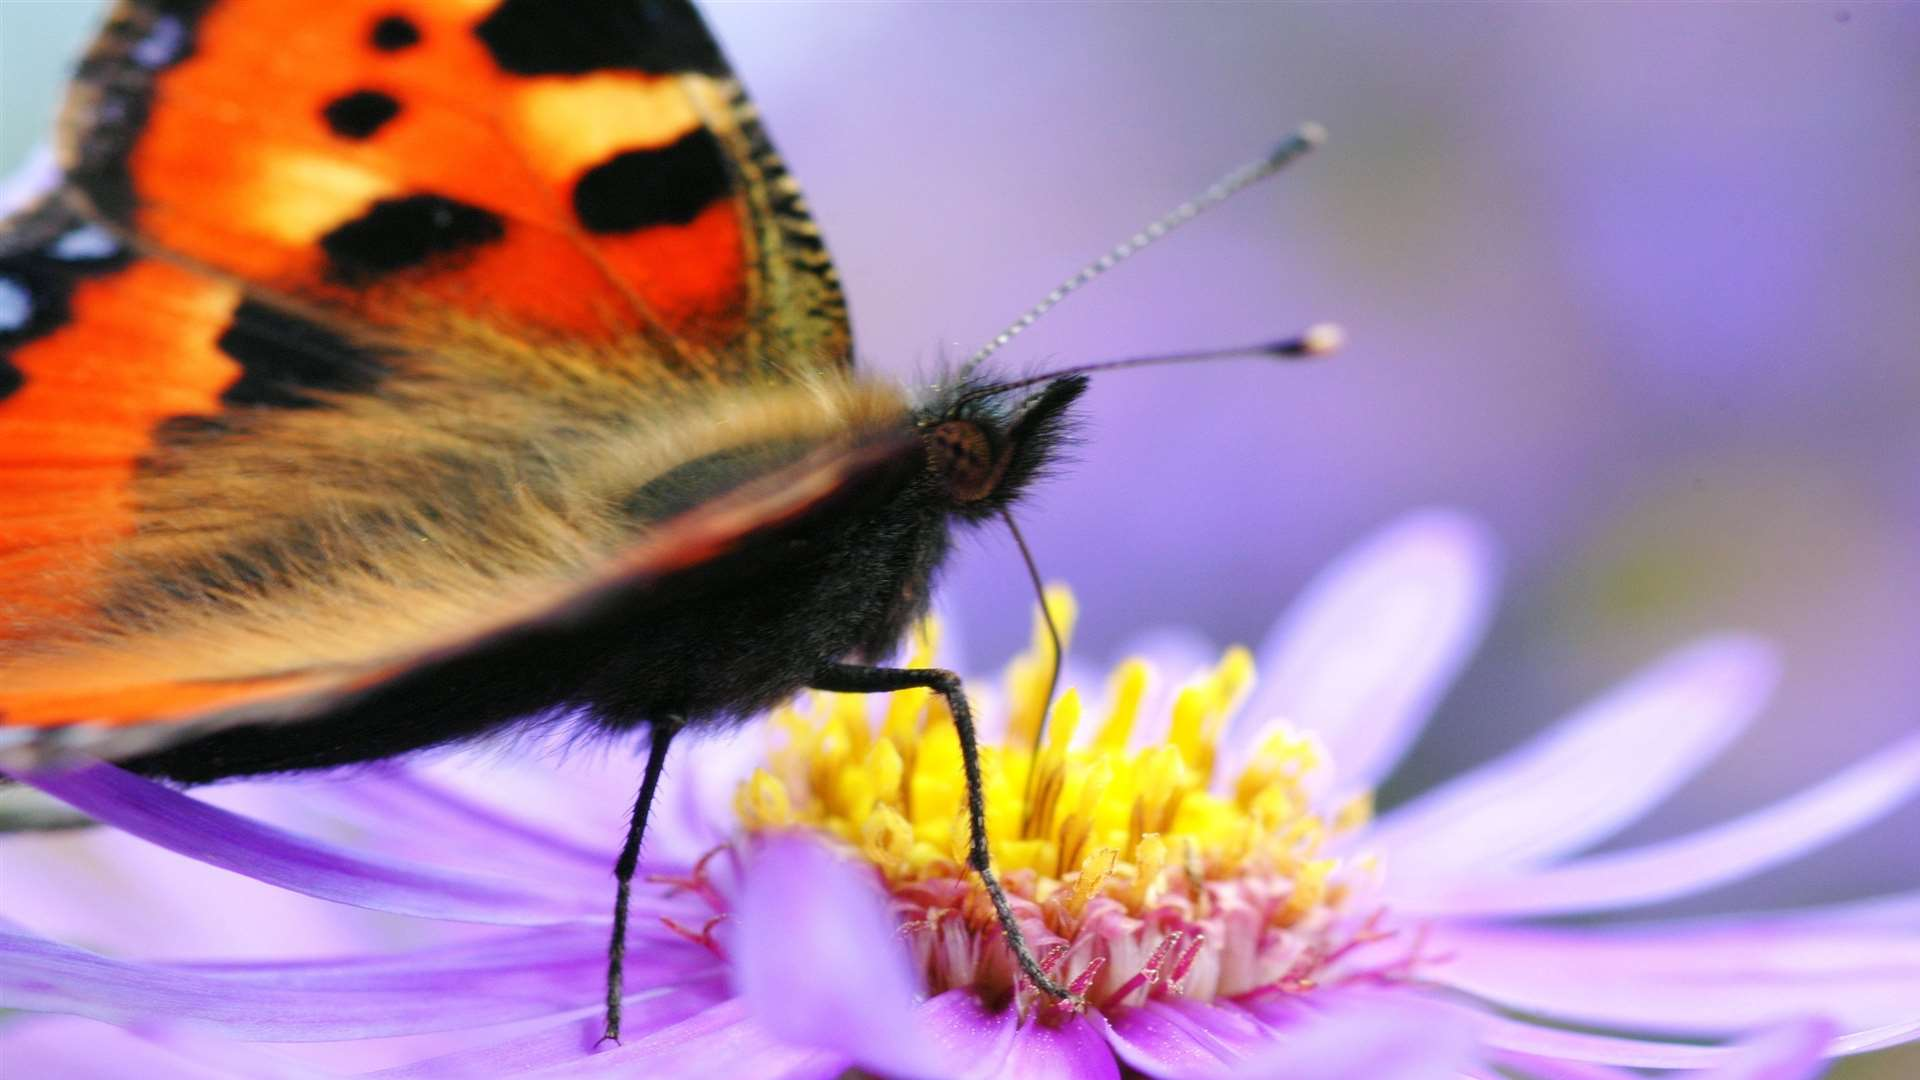 The small tortoiseshell is one of our most-familiar butterflies, appearing in gardens throughout the country